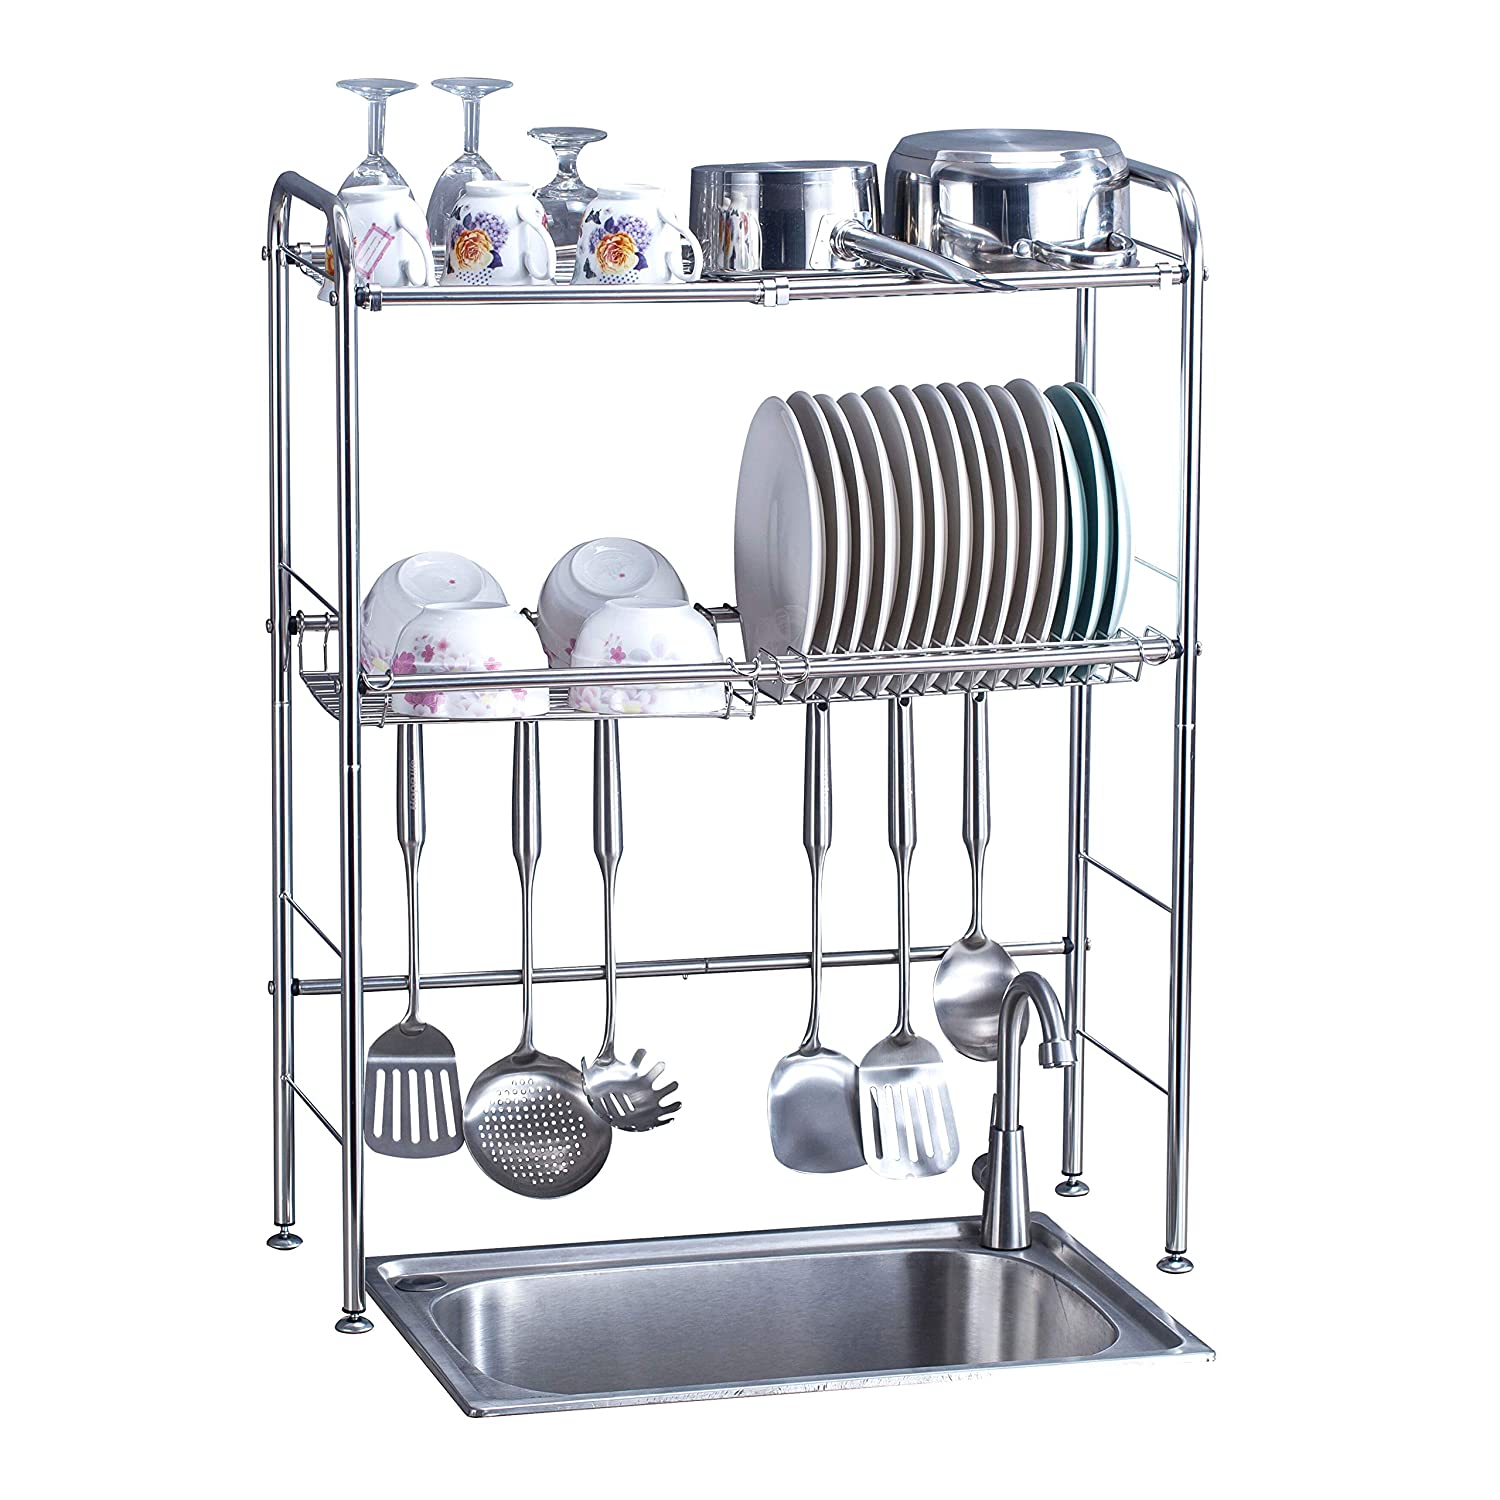 Delite Home 2 Tier Stainless Steel Over Sink Dish Rack Counter Top